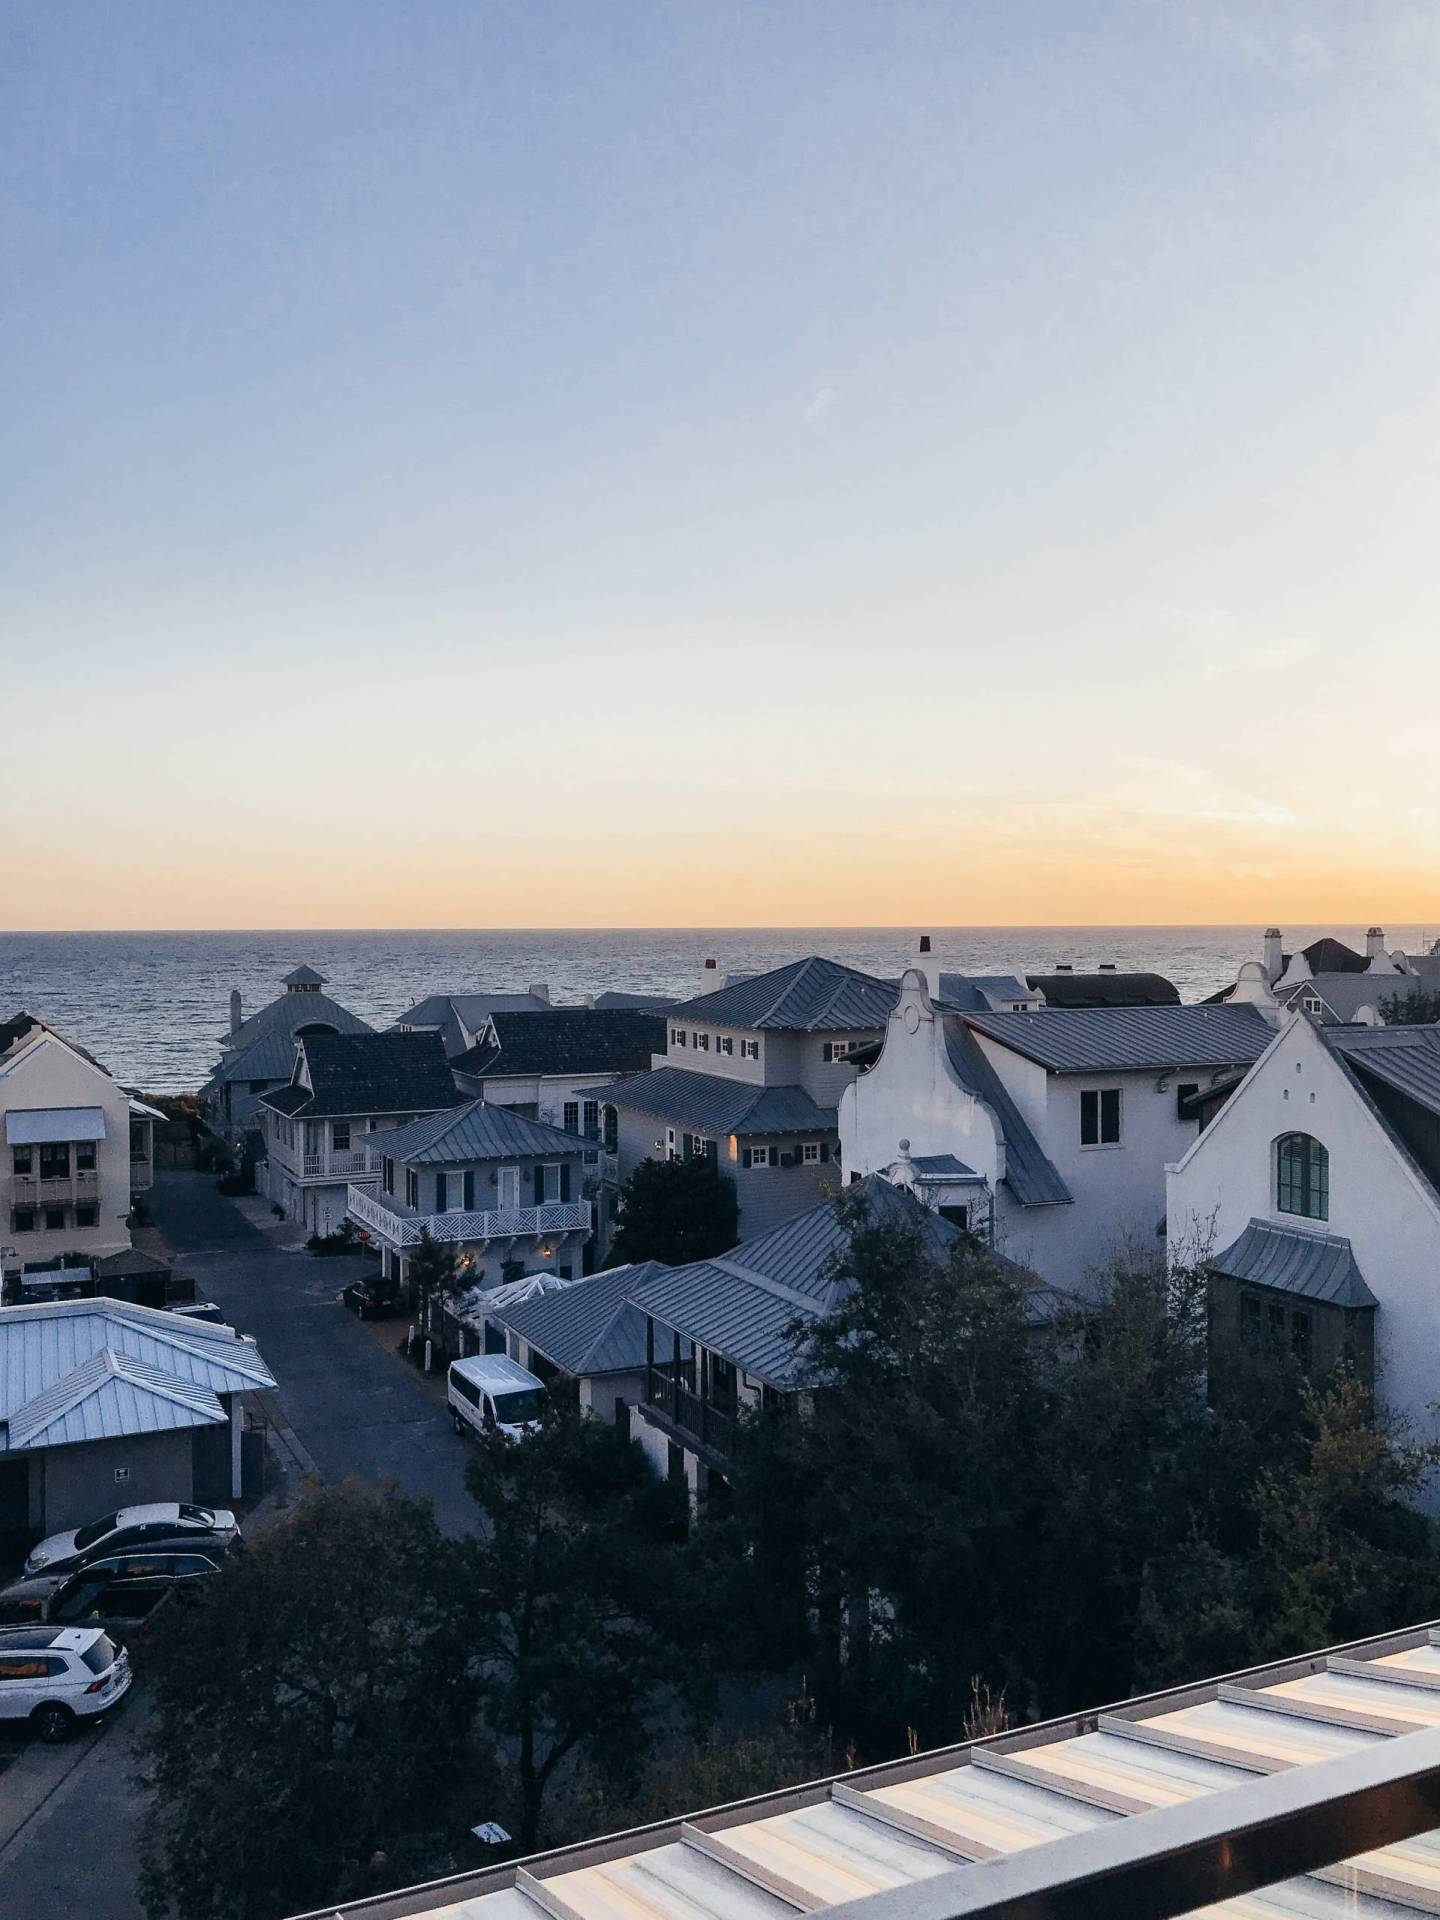 Sunset at Pescado Best Rooftop Bar in Rosemary Beach 30A Florida